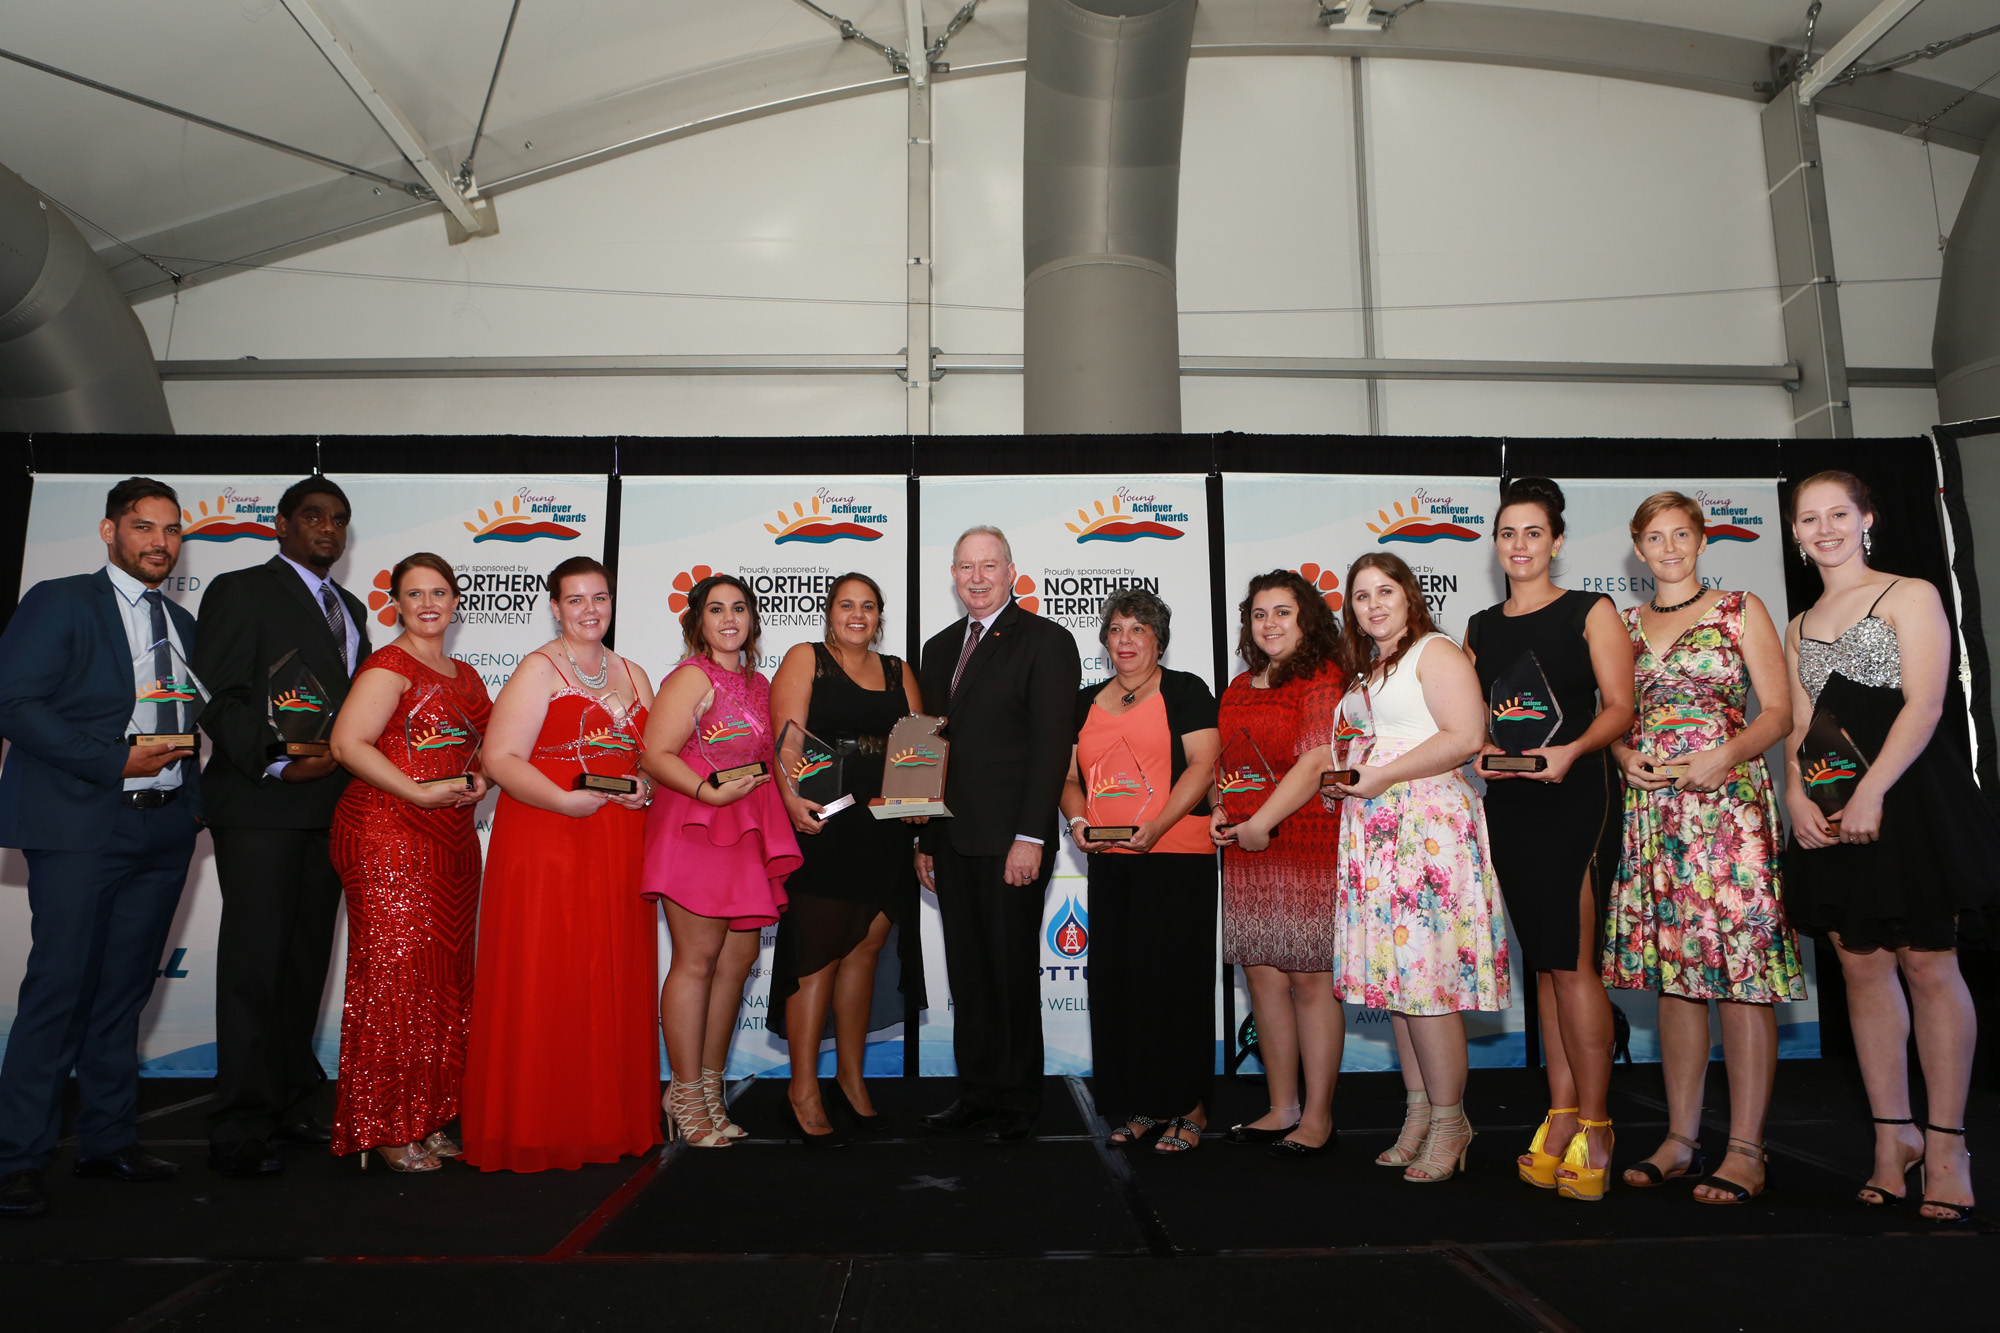 Northern Territory Young Achiever Award Winners